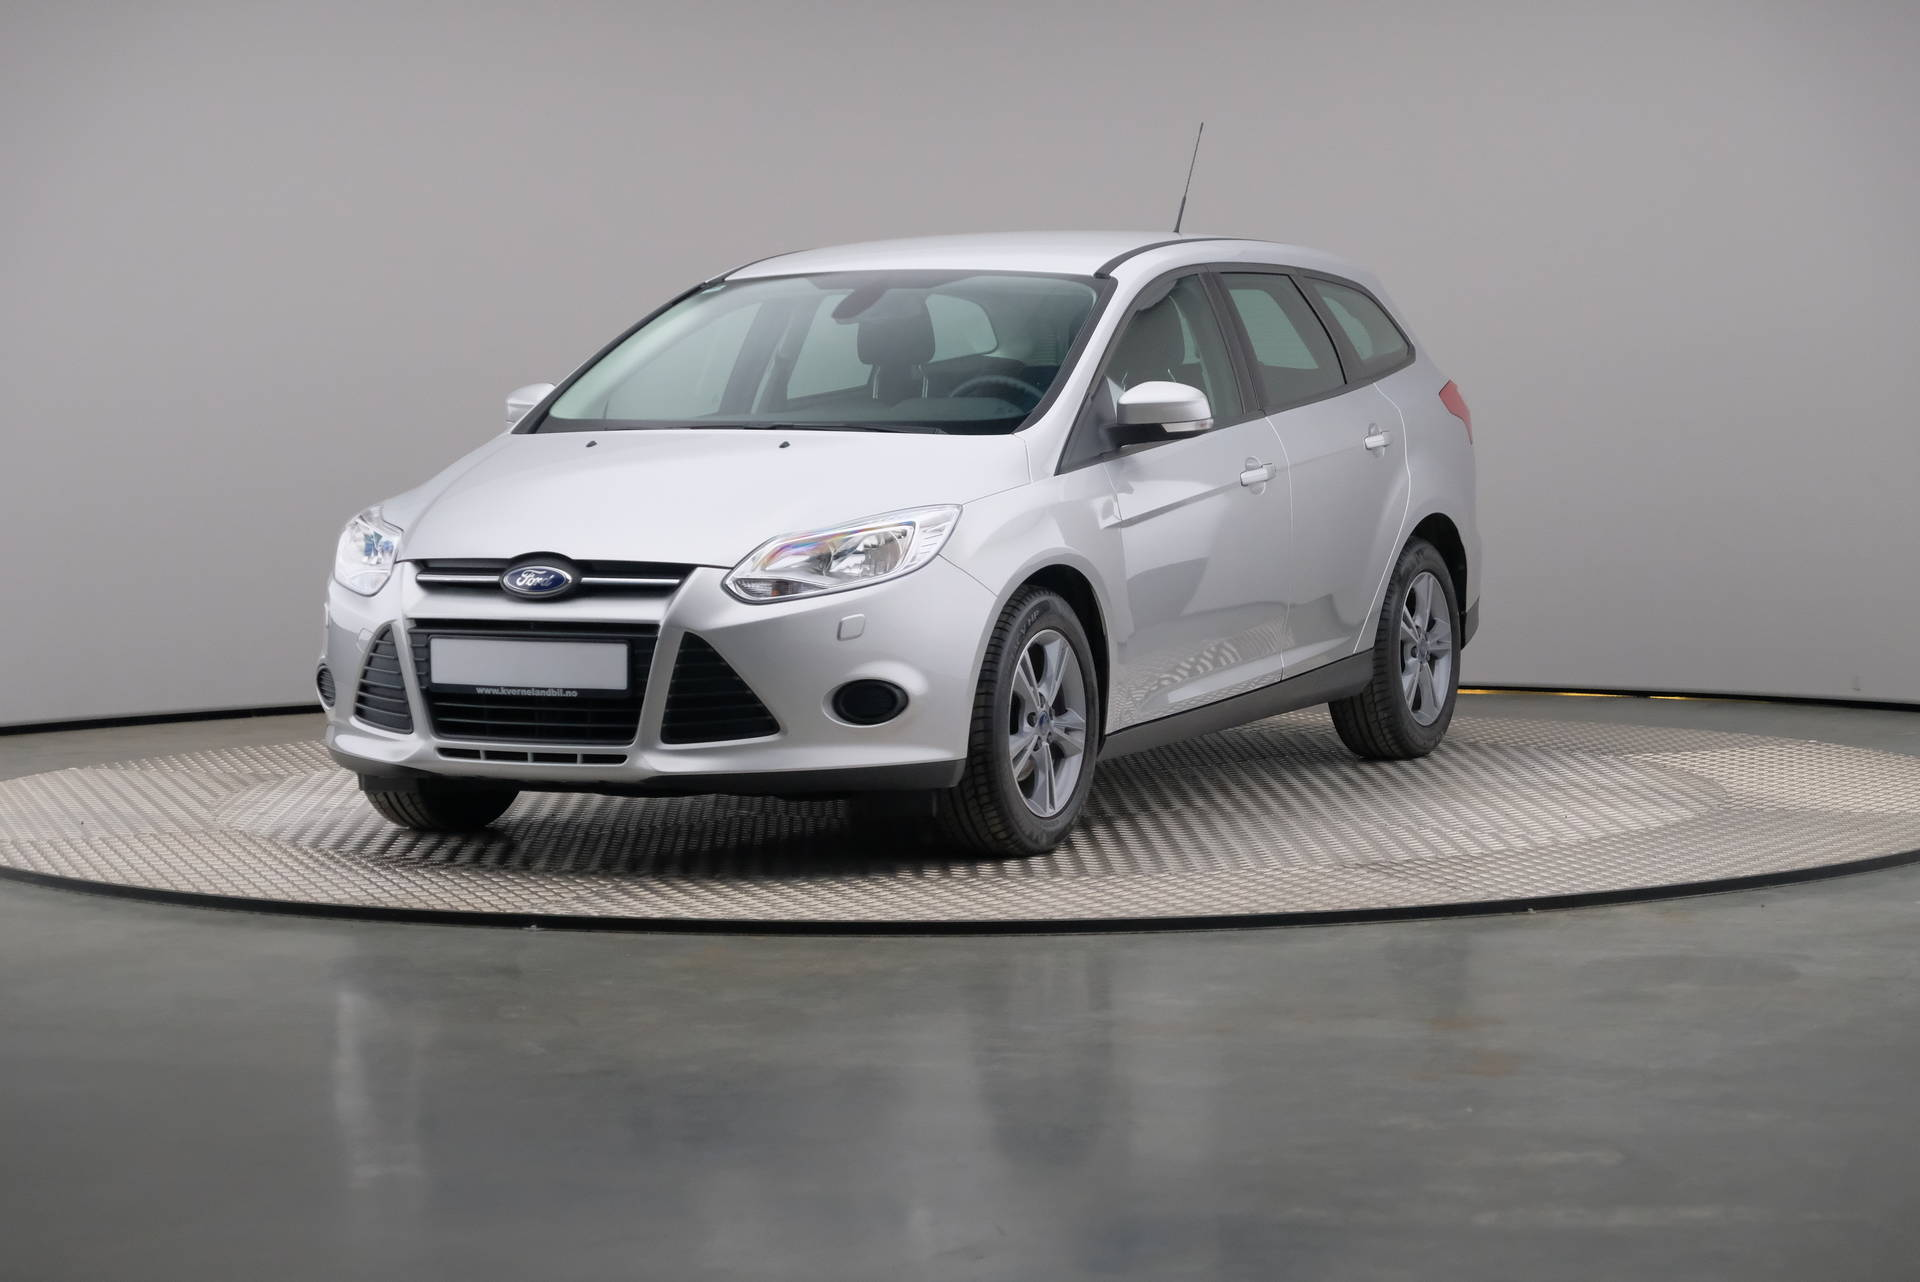 Ford Focus 1.1 100HK Trend PDC/BT, 360-image34